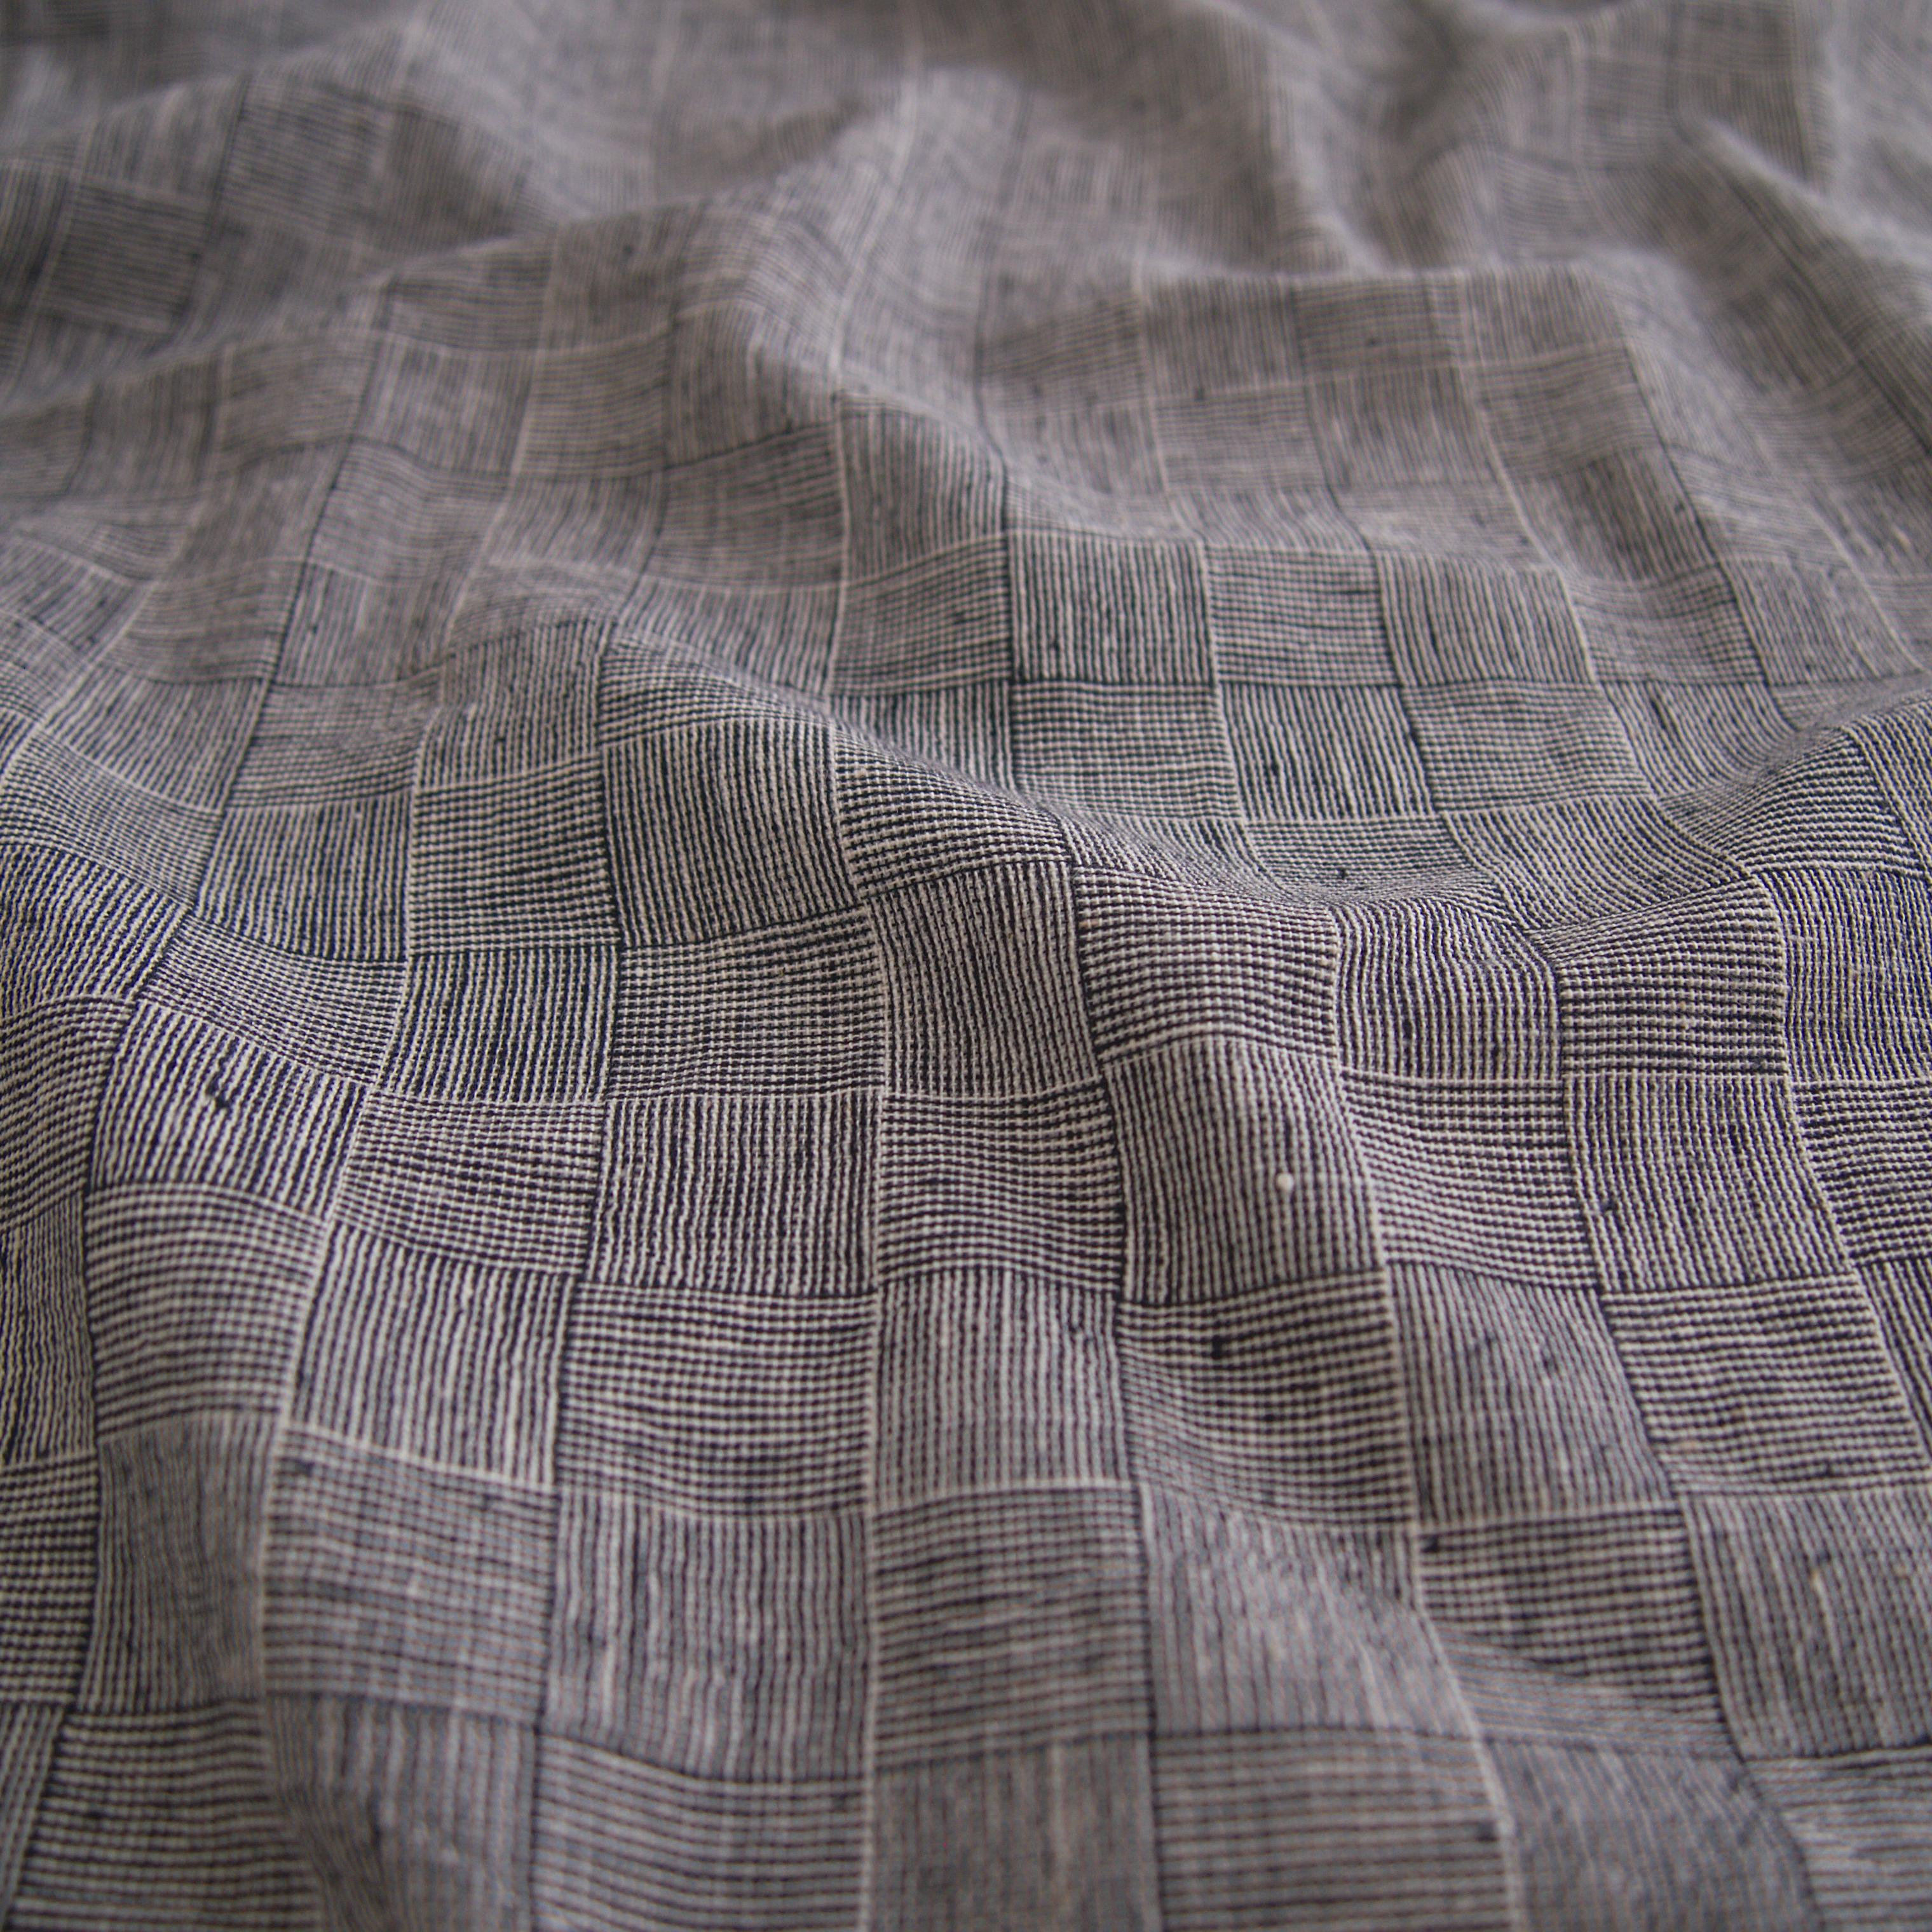 Indian Handloom-Woven Organic Kala Cotton Fabric - Plain 1 by 1 Weave - Checkers Design - Black Reactive Thread Dye - Contrast